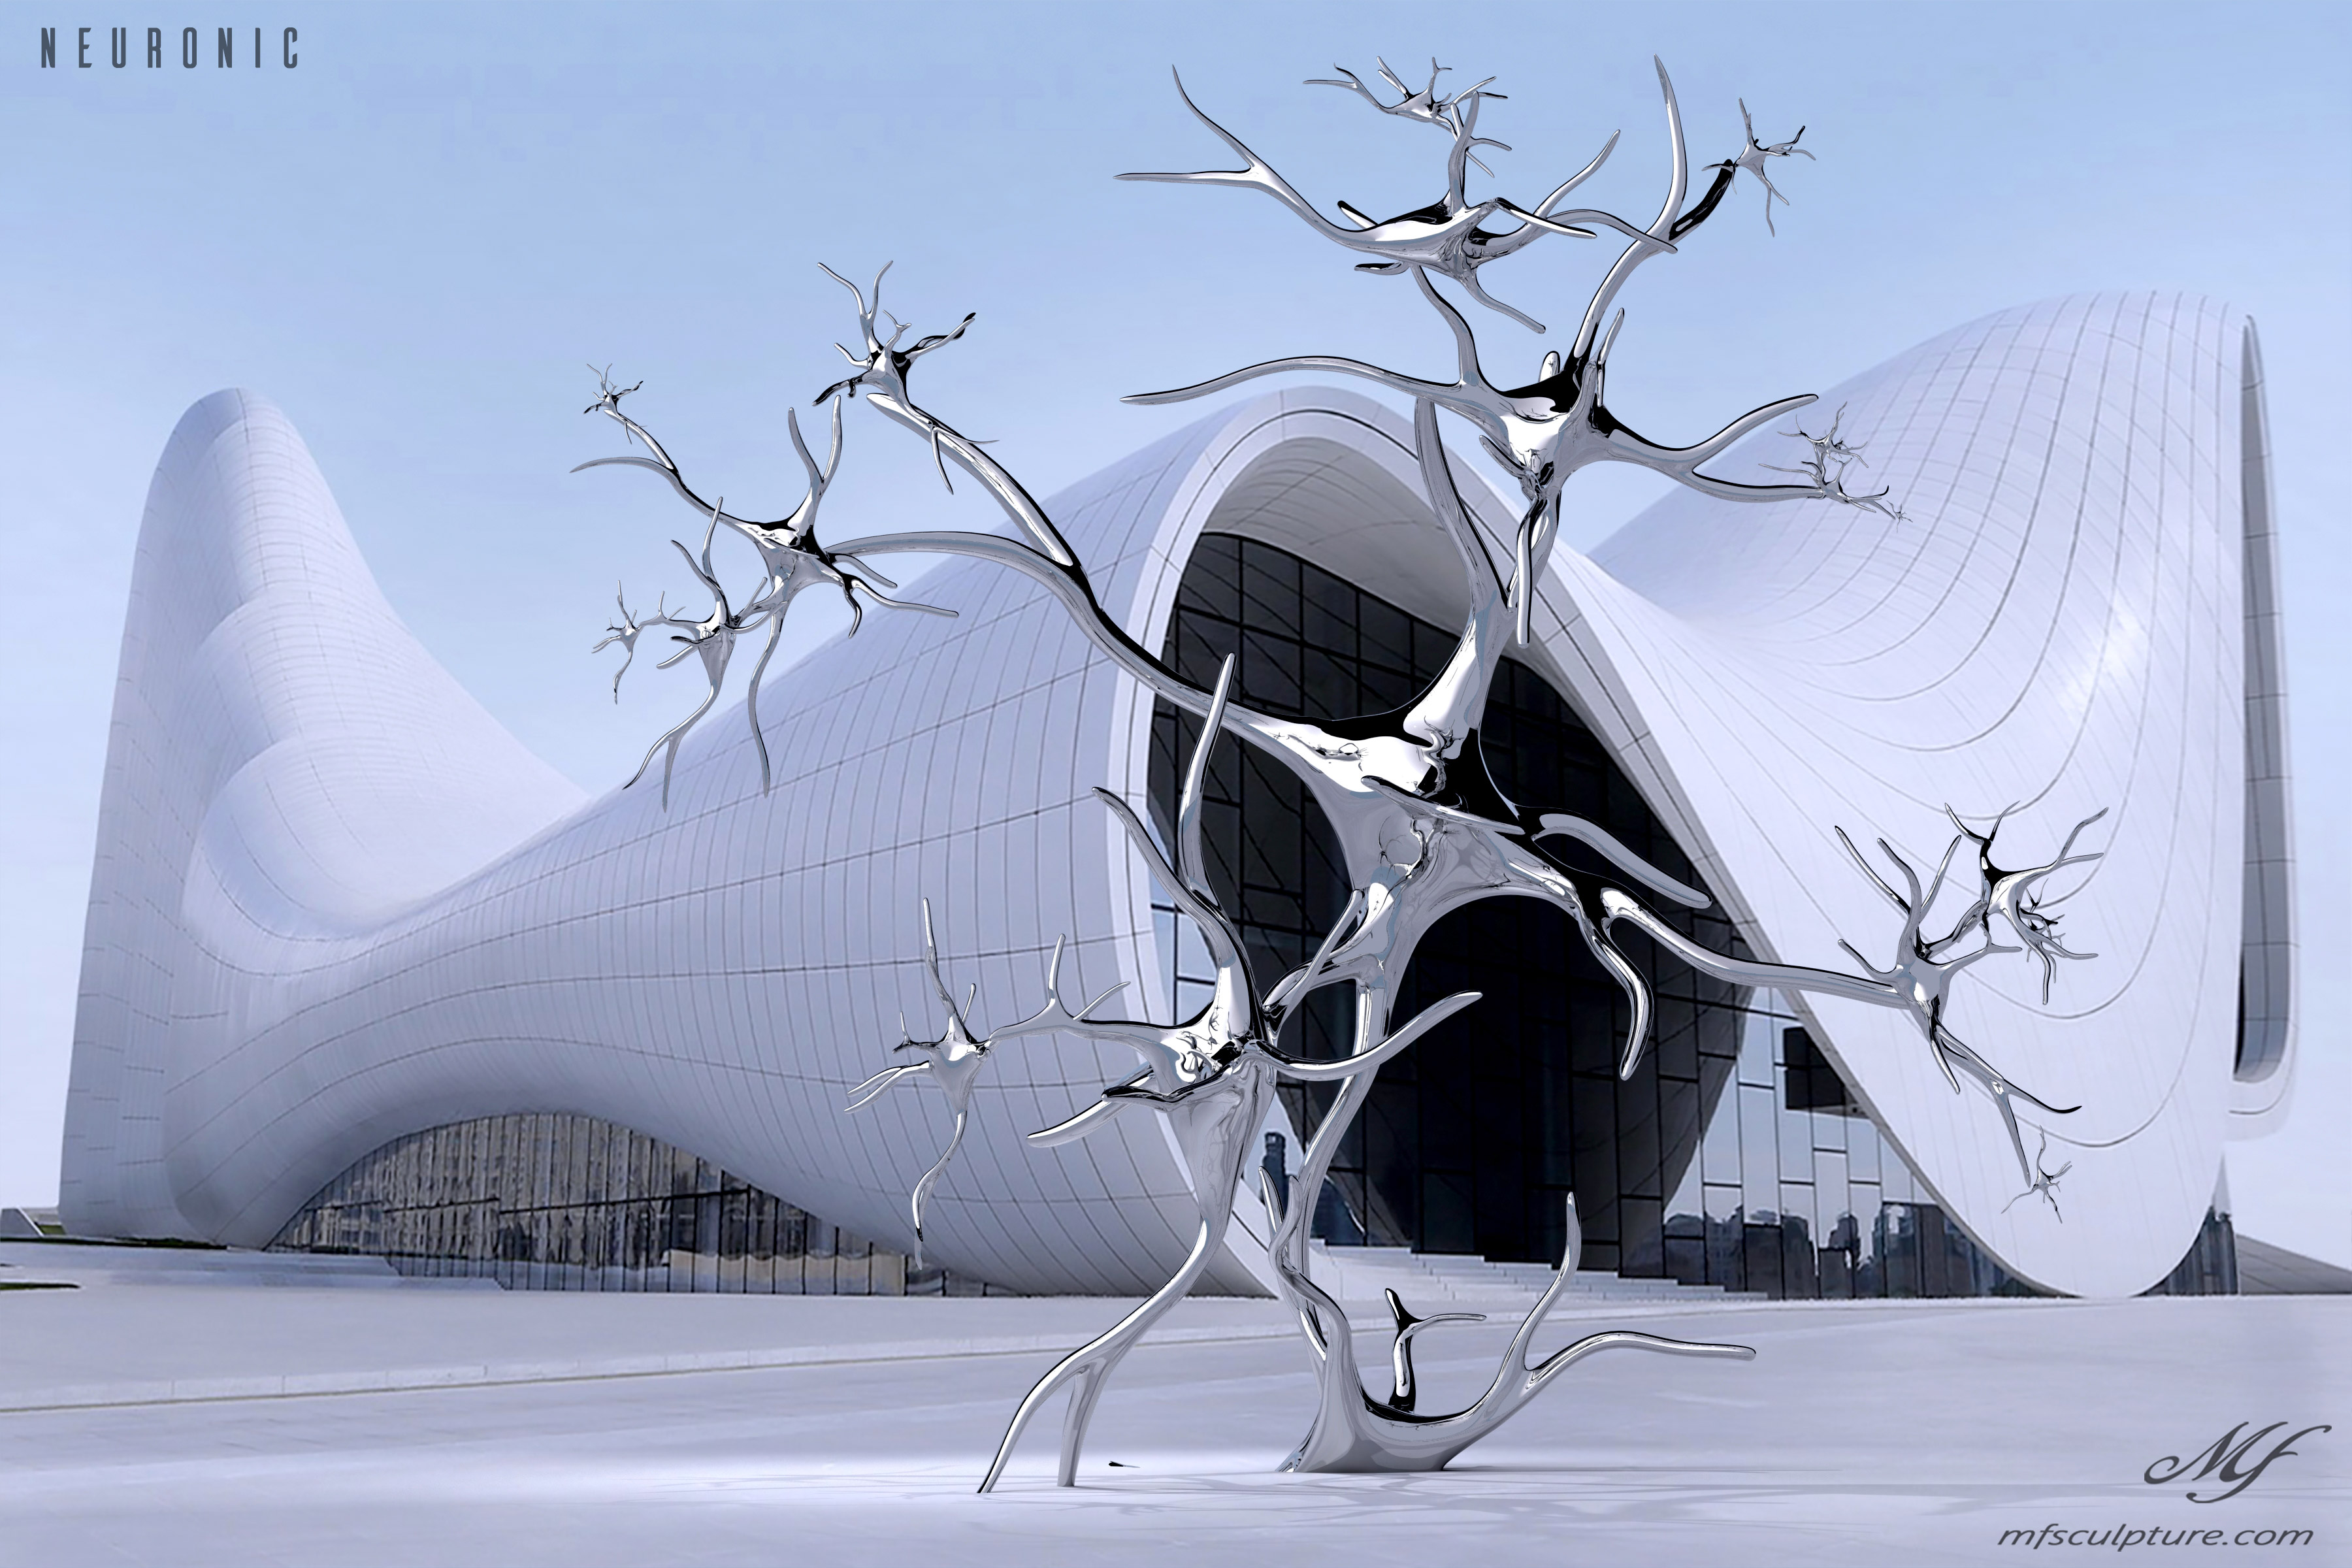 heydar aliyev center baku zaha hadid Modern Sculpture Neuronic Neuron Brain 1